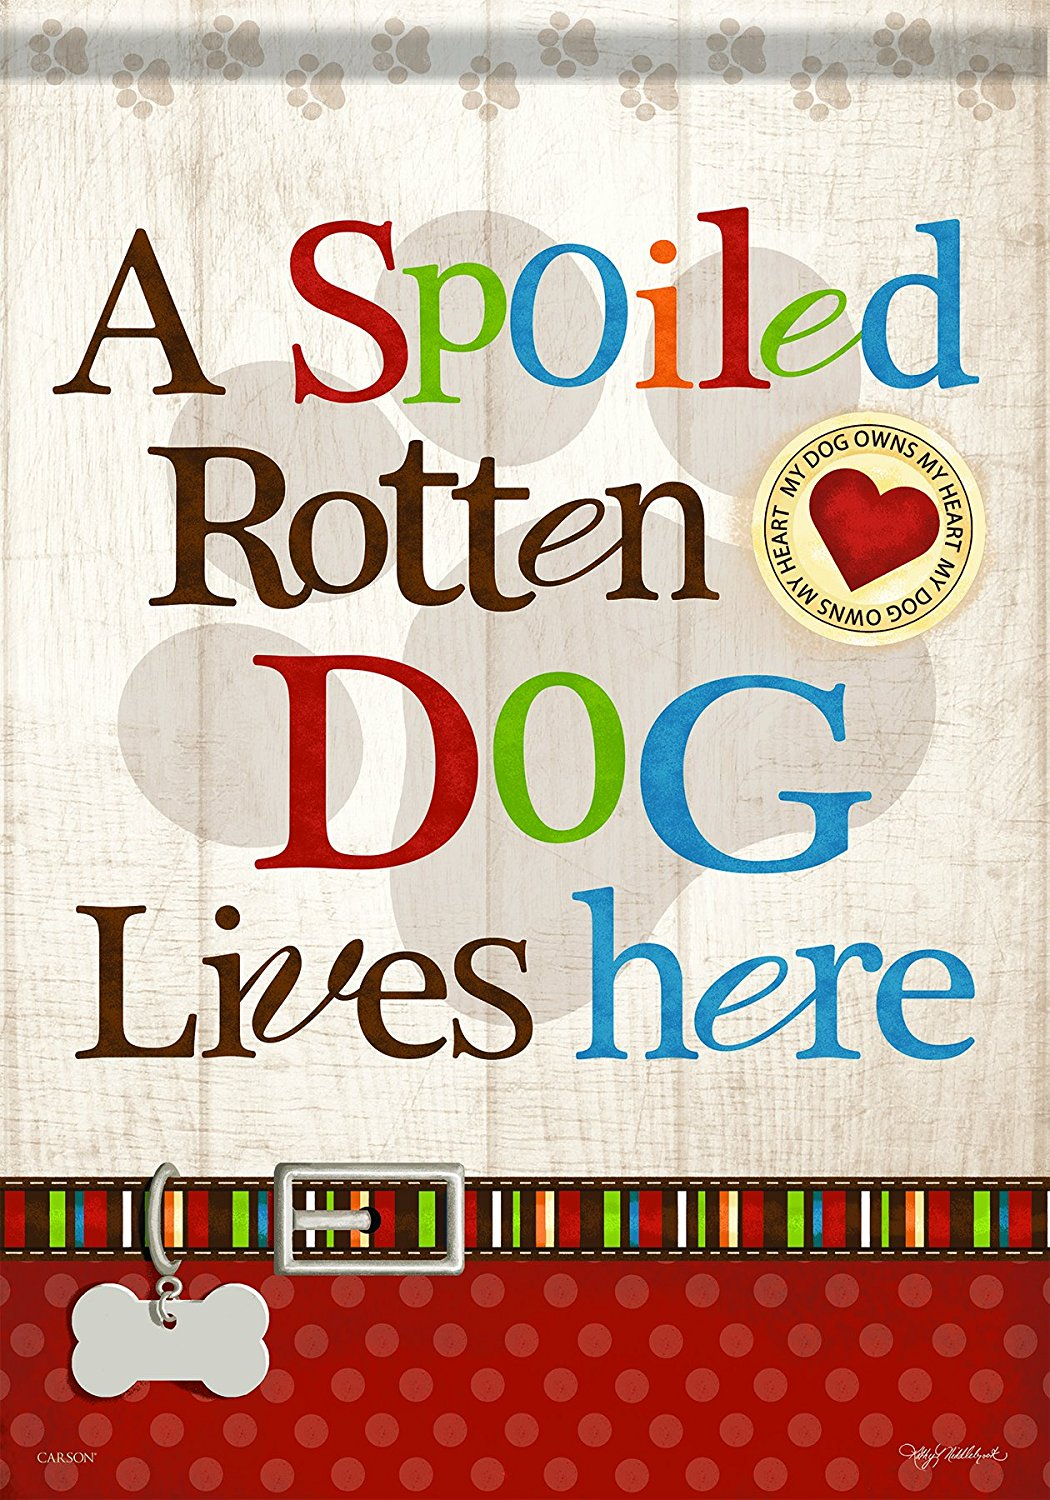 Carson Home Accents Garden Flag Spoiled Rotten Dog